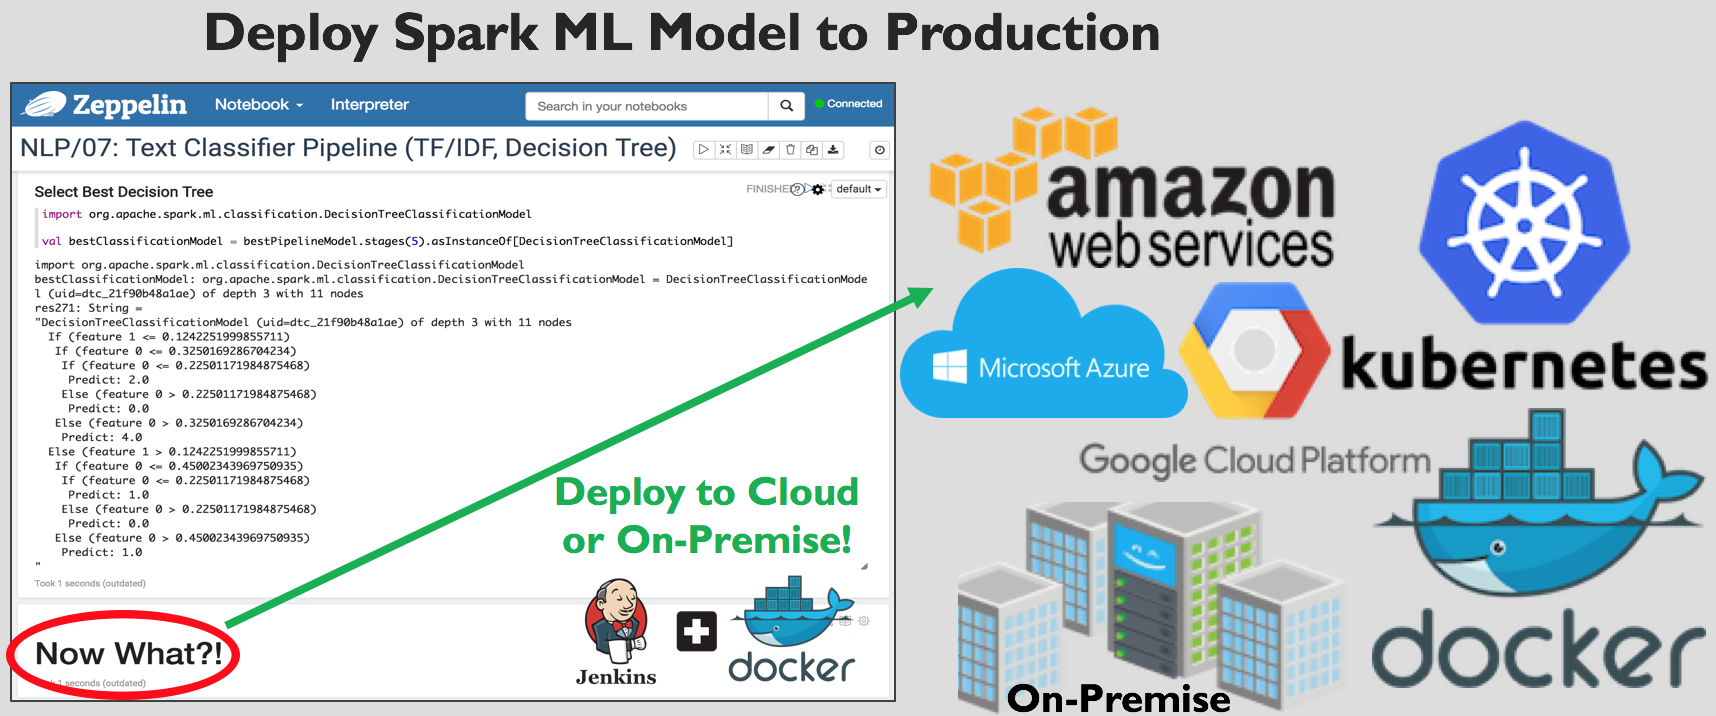 Deploy Spark ML Model to Production